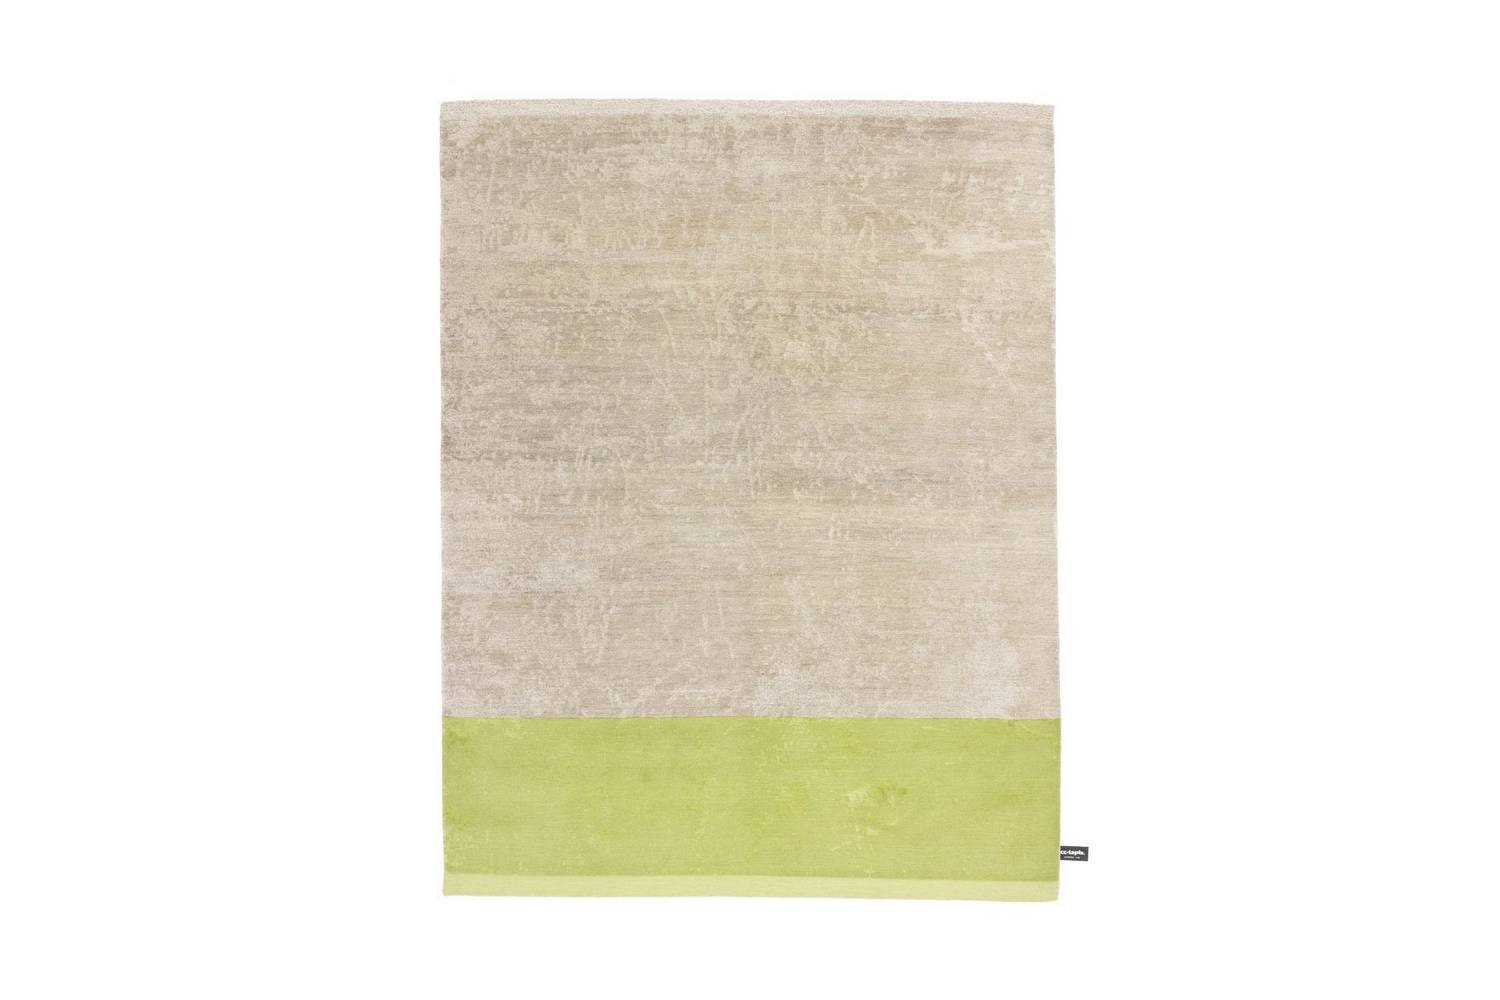 Dipped Scratch Rug by Dipped Collection for CC-Tapis